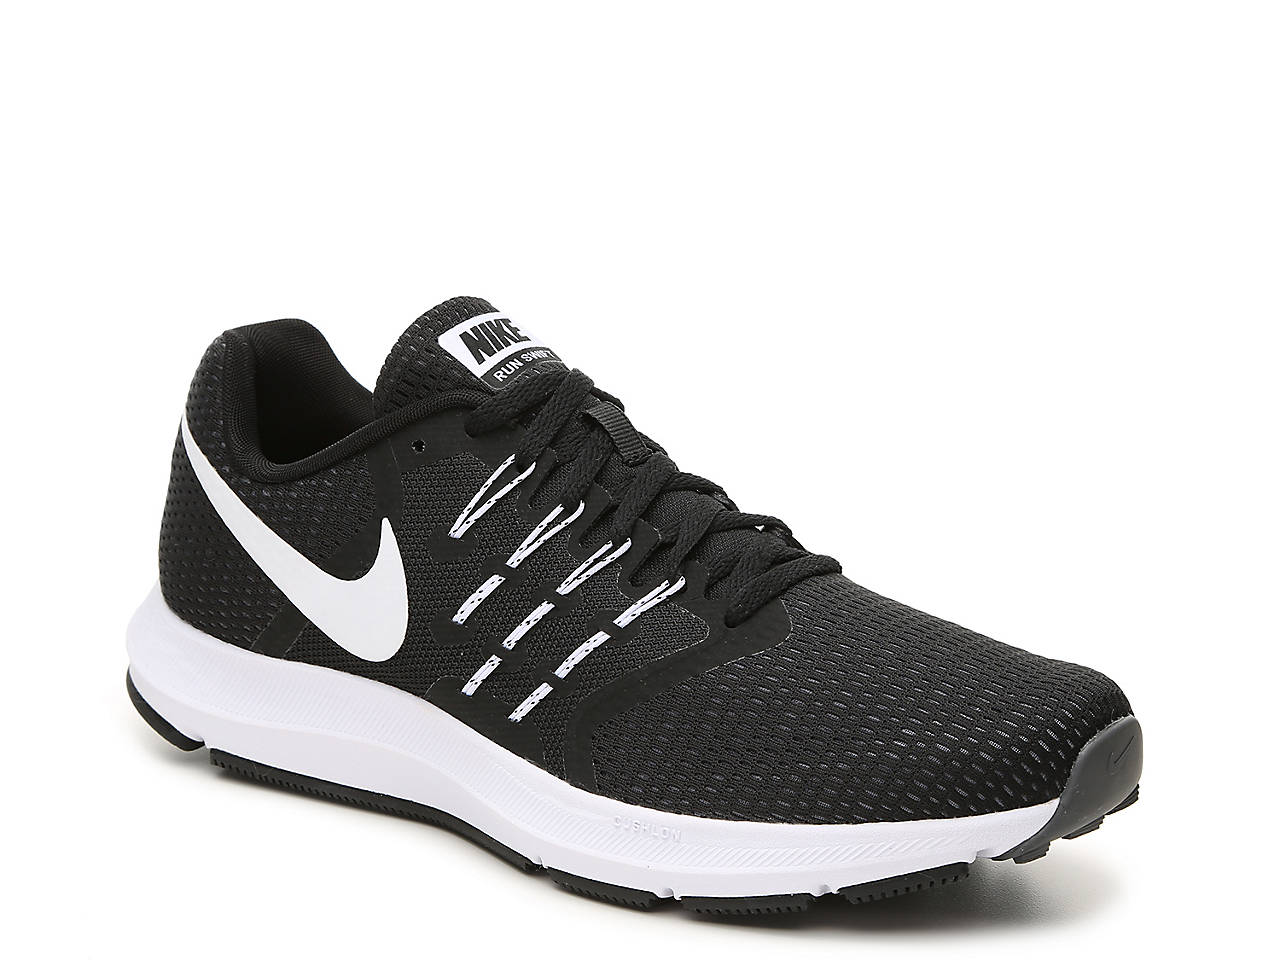 6bc0e264089e Nike Run Swift Lightweight Running Shoe - Men s Men s Shoes